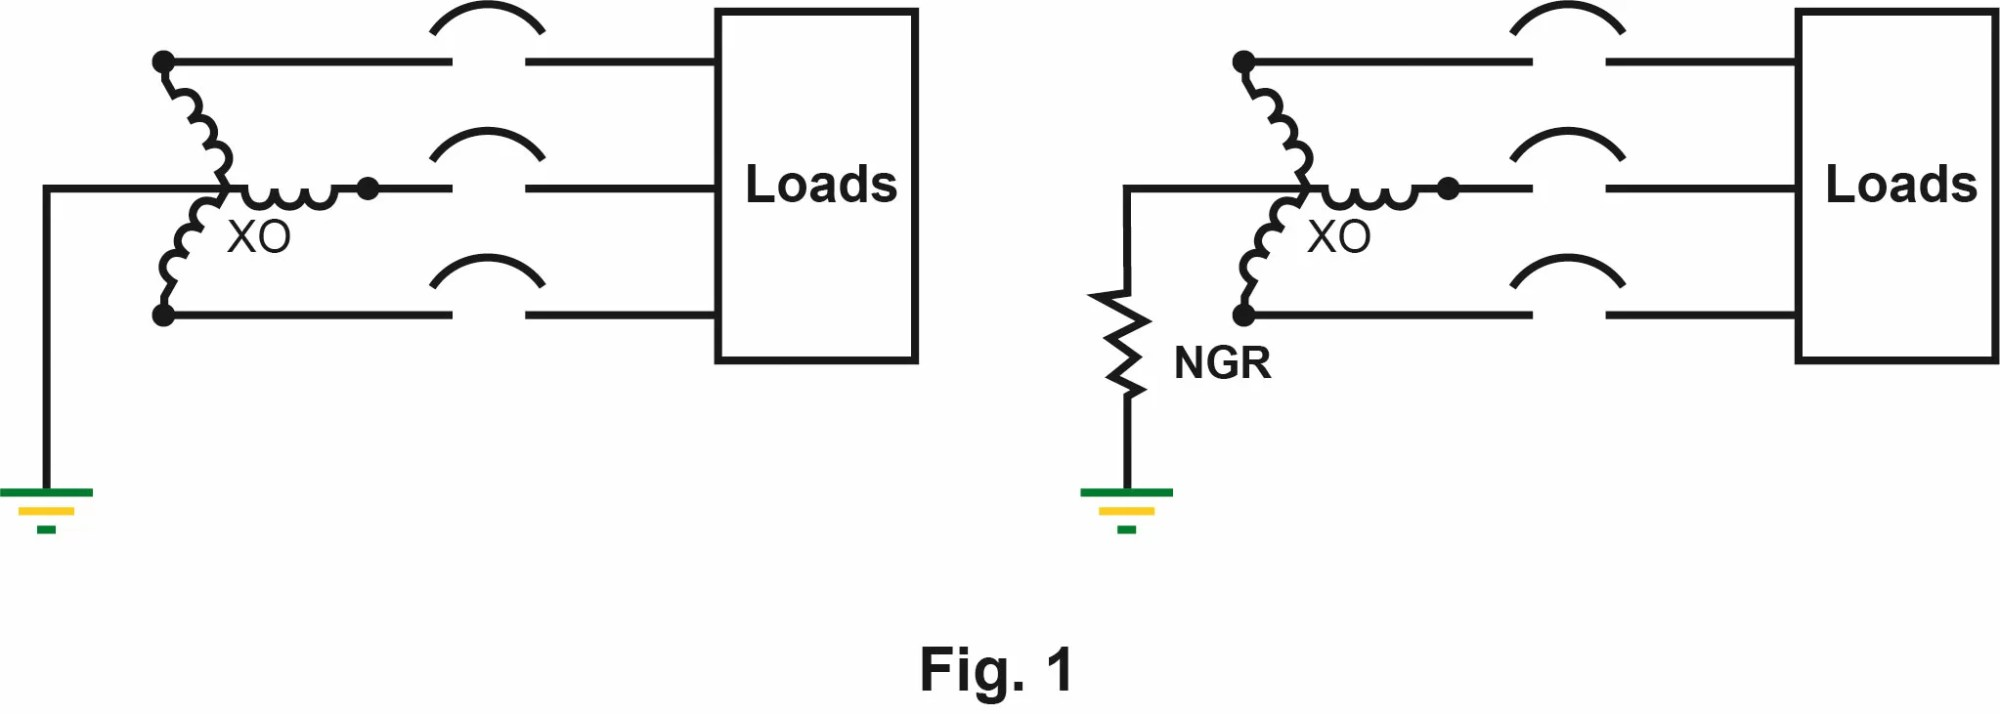 hight resolution of grounding system with without ngr